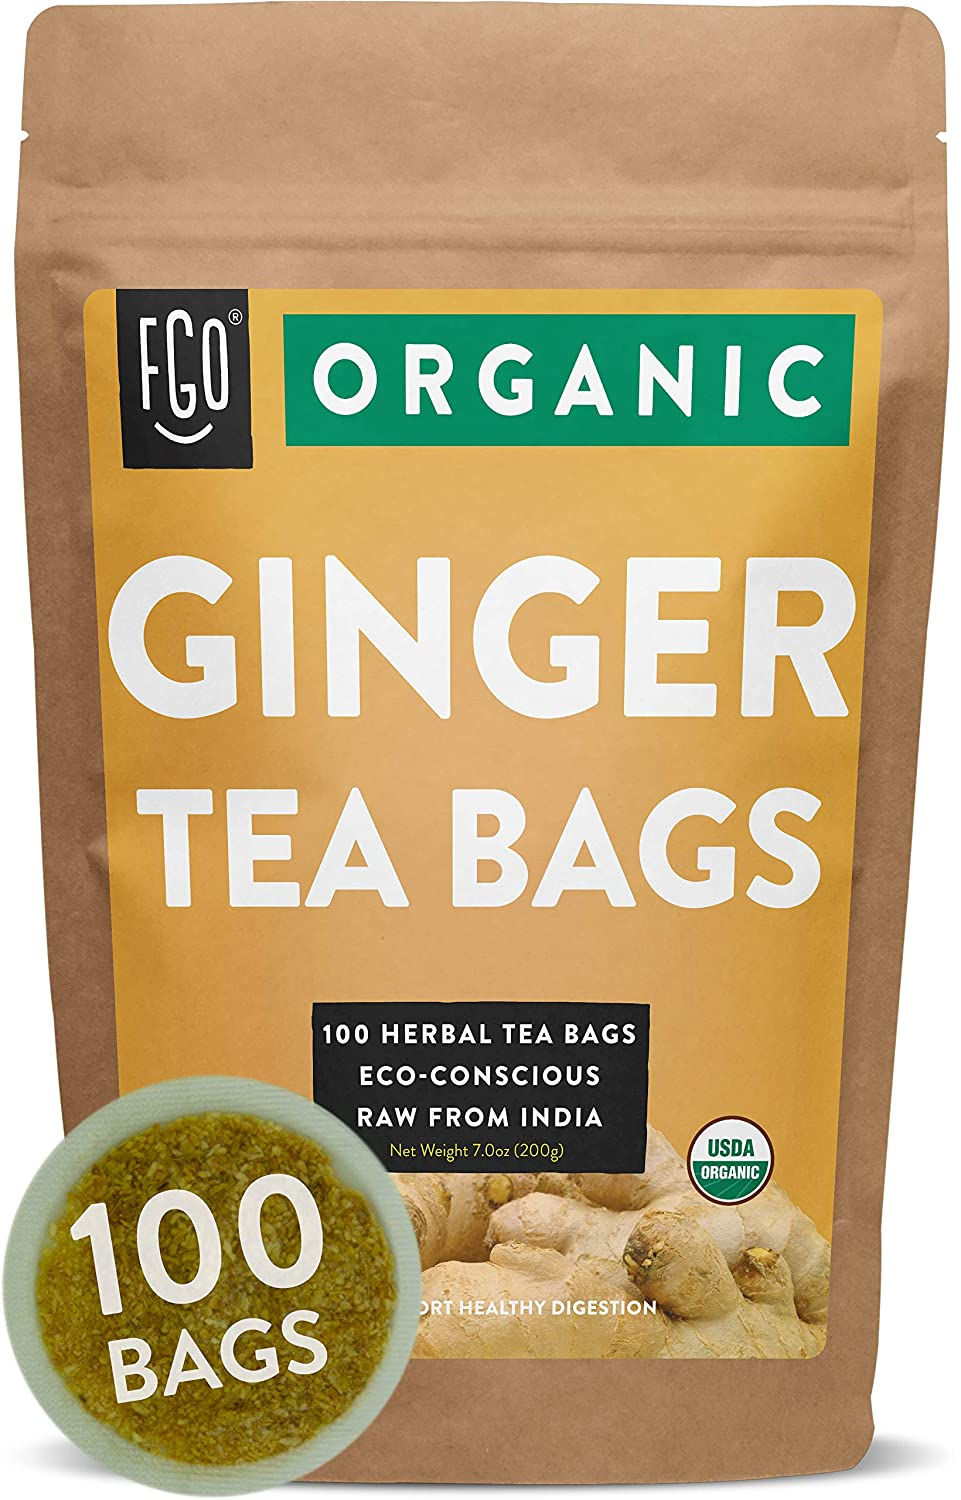 Organic Ginger Tea Bags | 100 Tea Bags | Eco-Conscious Tea Bags in Kraft Bag